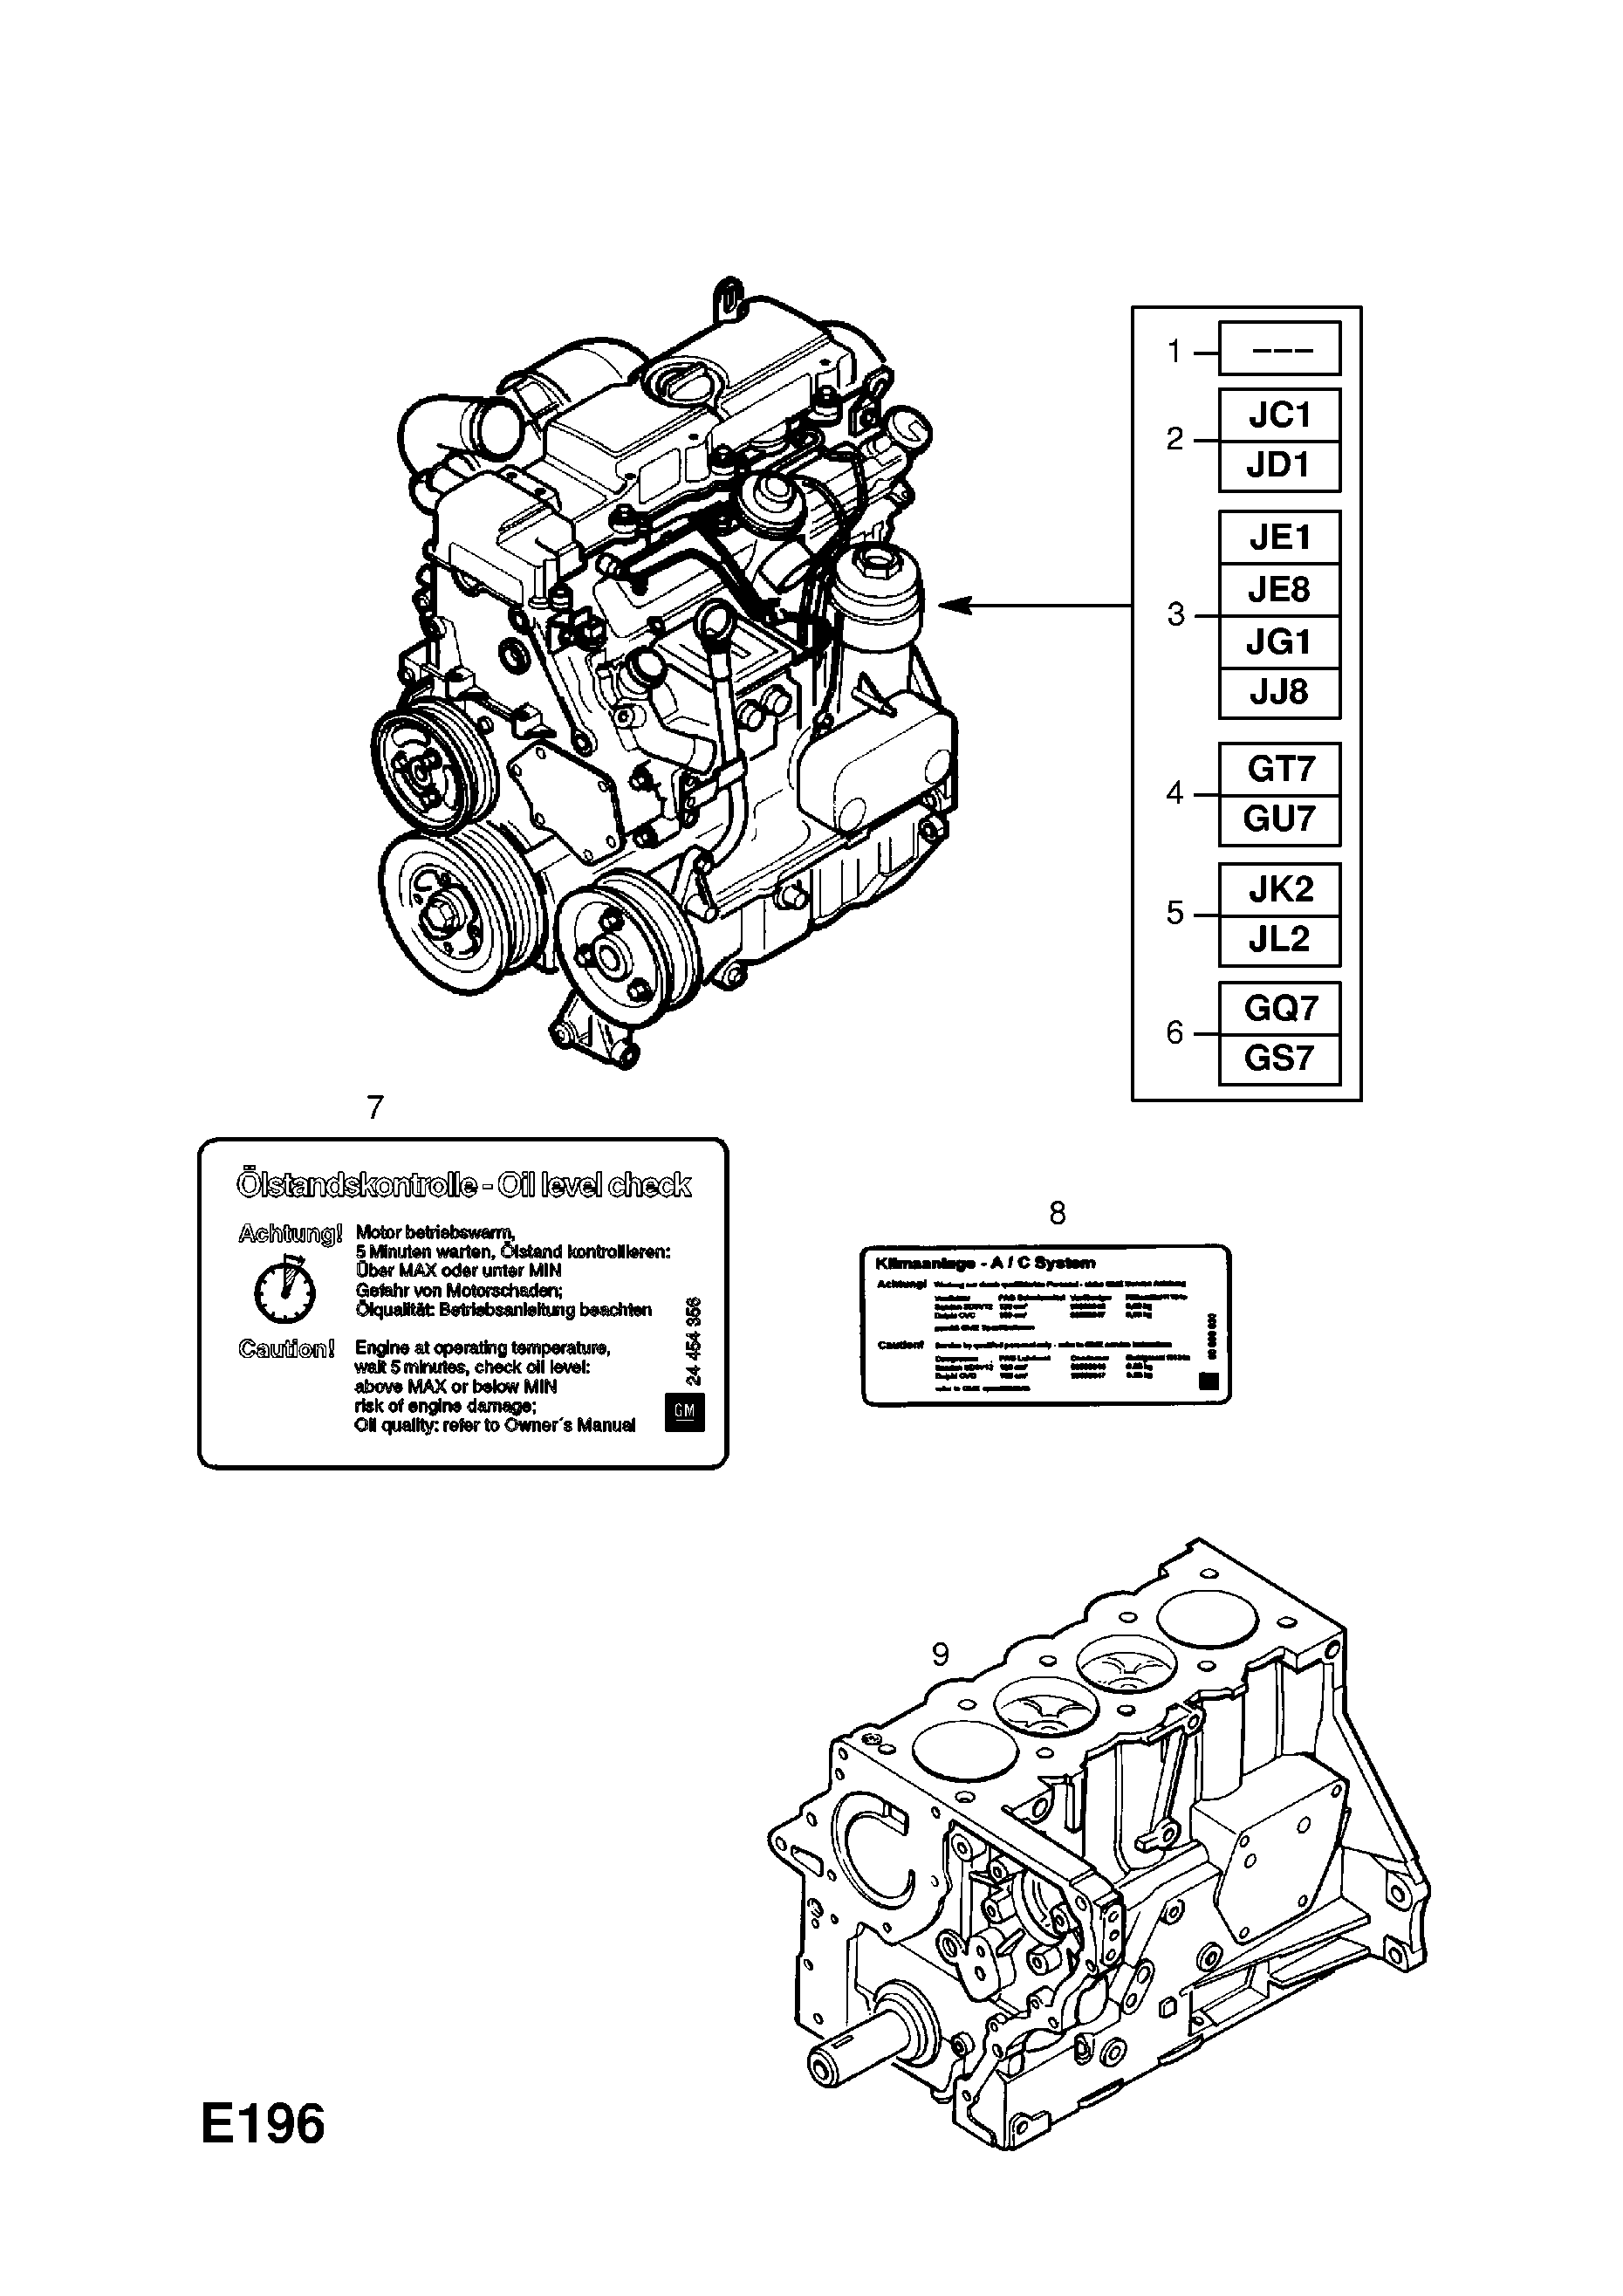 Engine Assembly Used With Manual Transmission Opel Astra